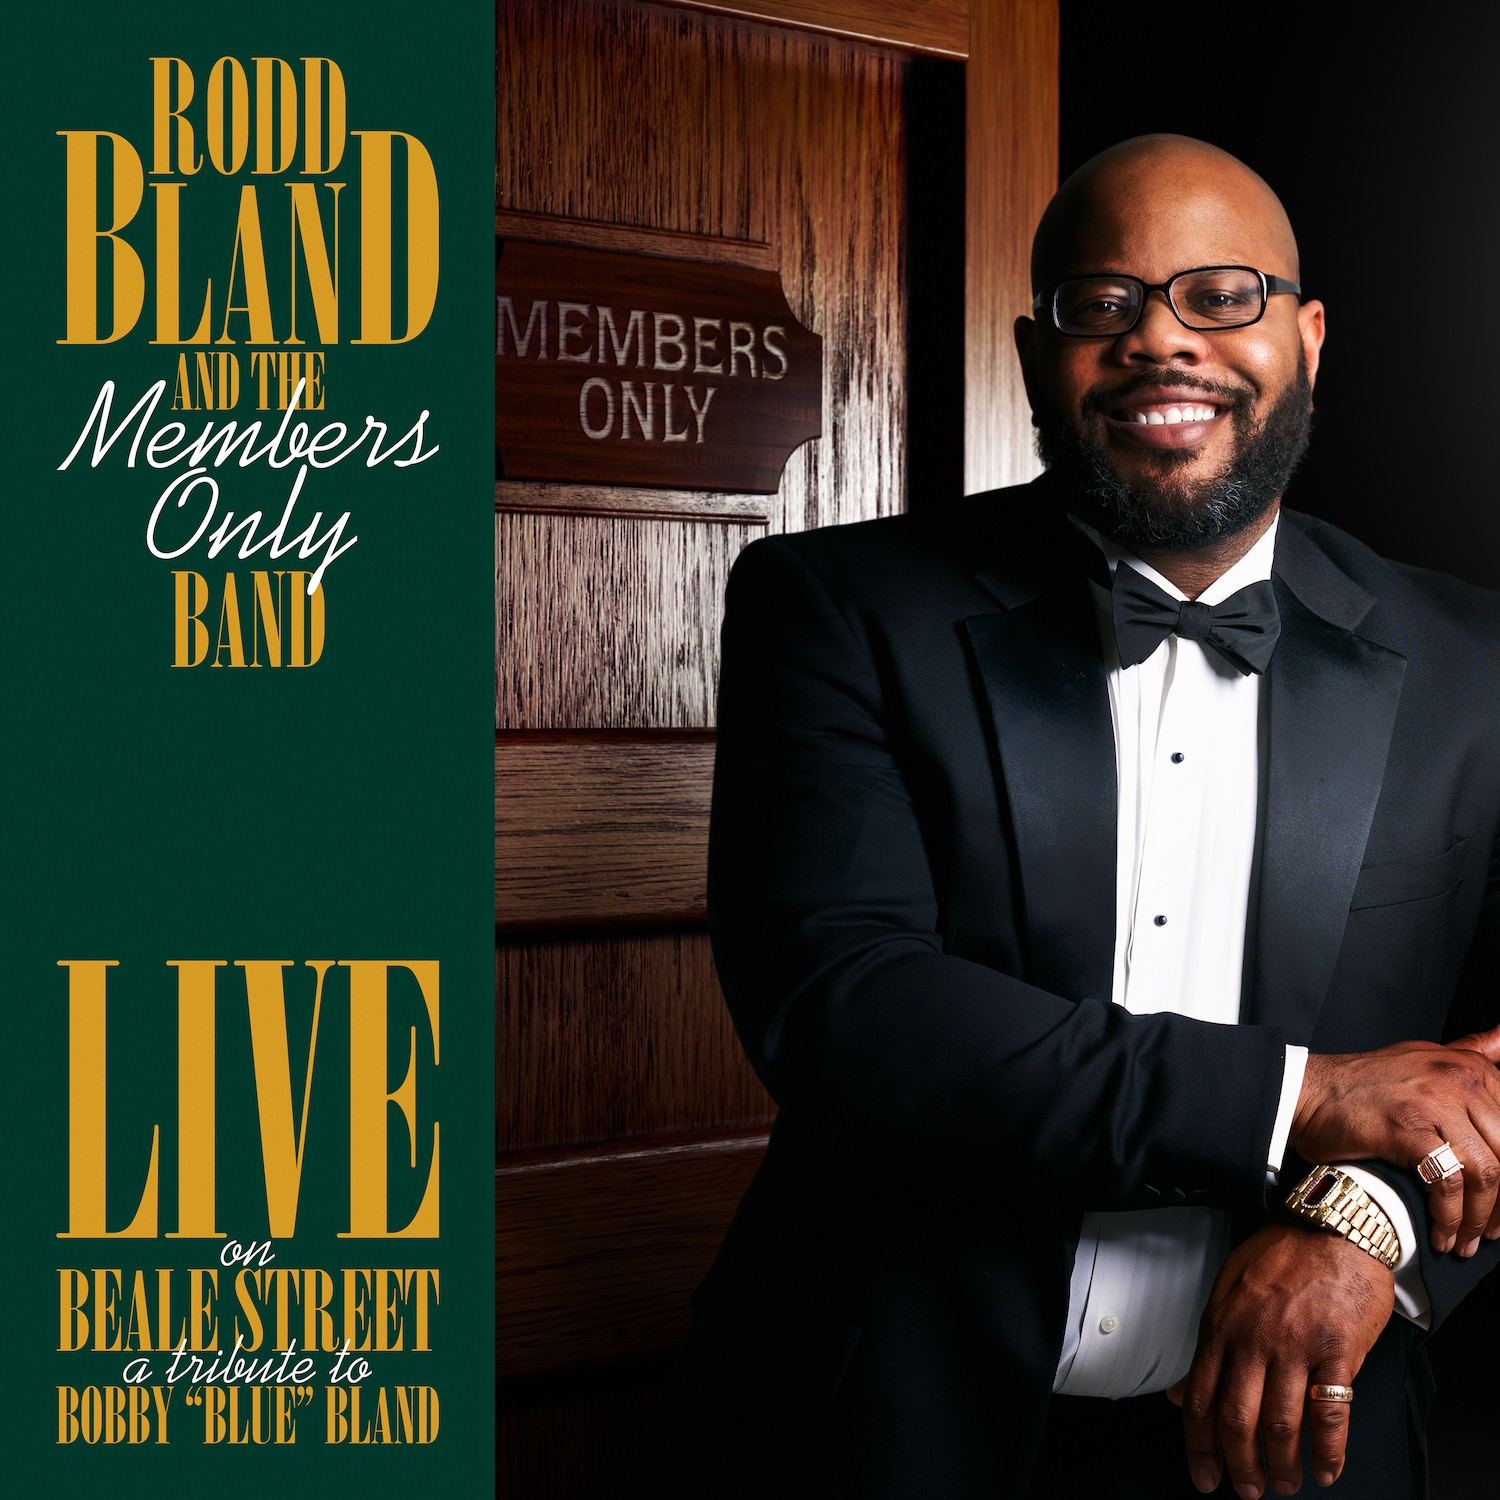 Rodd Bland & The Members Only Band - Live On Beale Street – A Tribute To Bobby Blue Bland